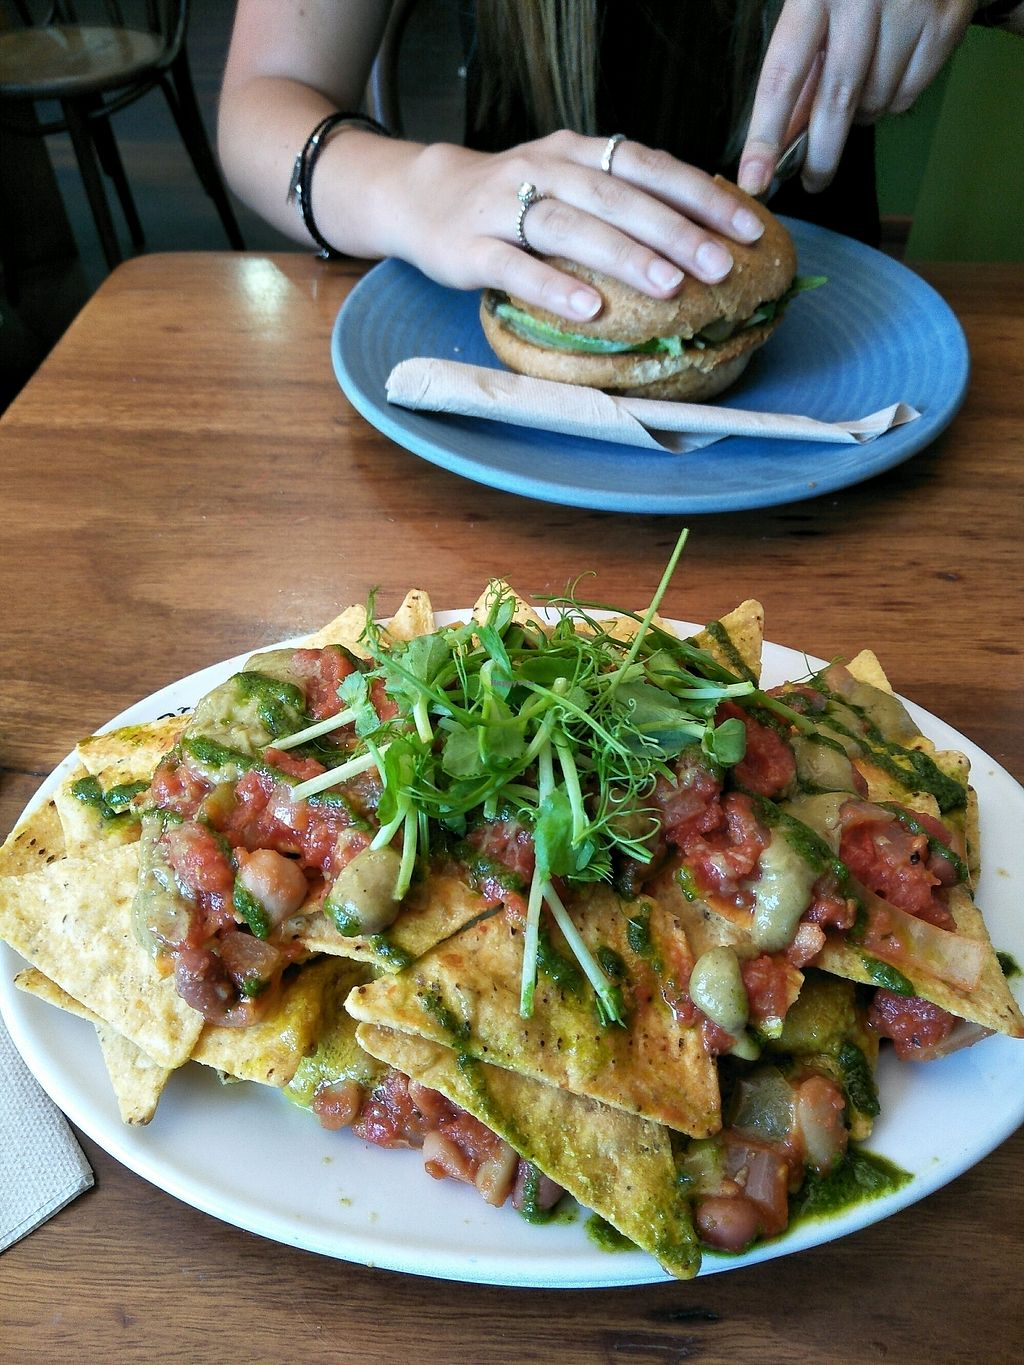 """Photo of Natural Temptation Cafe  by <a href=""""/members/profile/Cynthia1998"""">Cynthia1998</a> <br/>vegan nachos (and vegan burger in background)  <br/> March 10, 2018  - <a href='/contact/abuse/image/42506/368798'>Report</a>"""